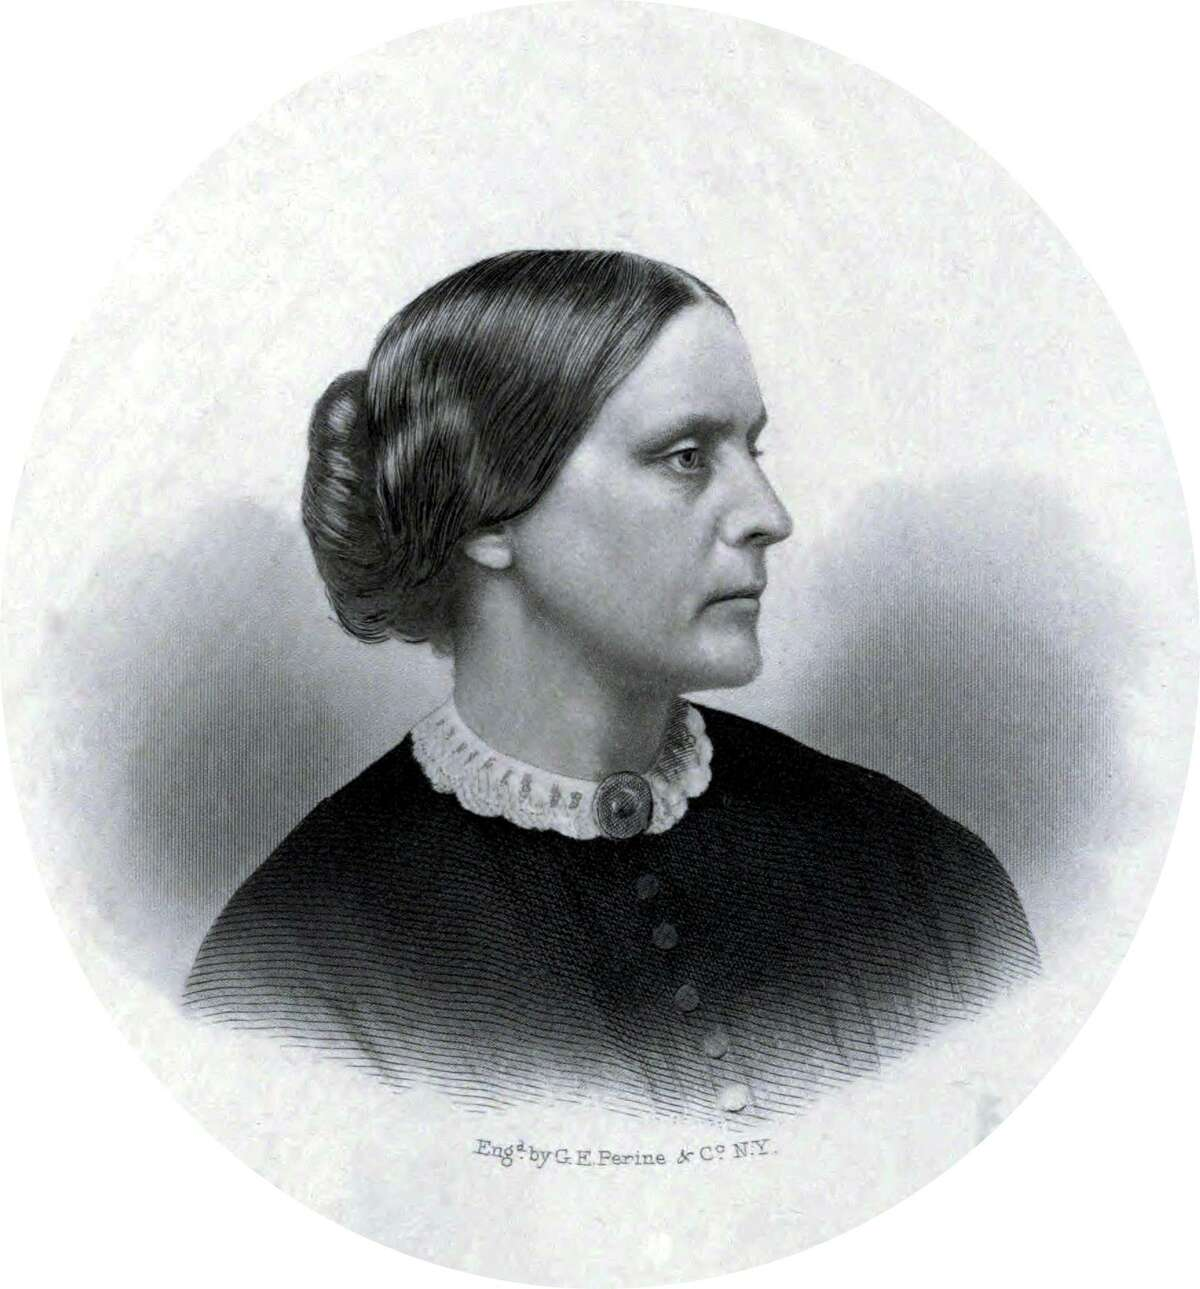 Women's suffragist Susan B. Anthony was born in Adams, Mass. and became the first female depicted on a U.S. coin in 1979.